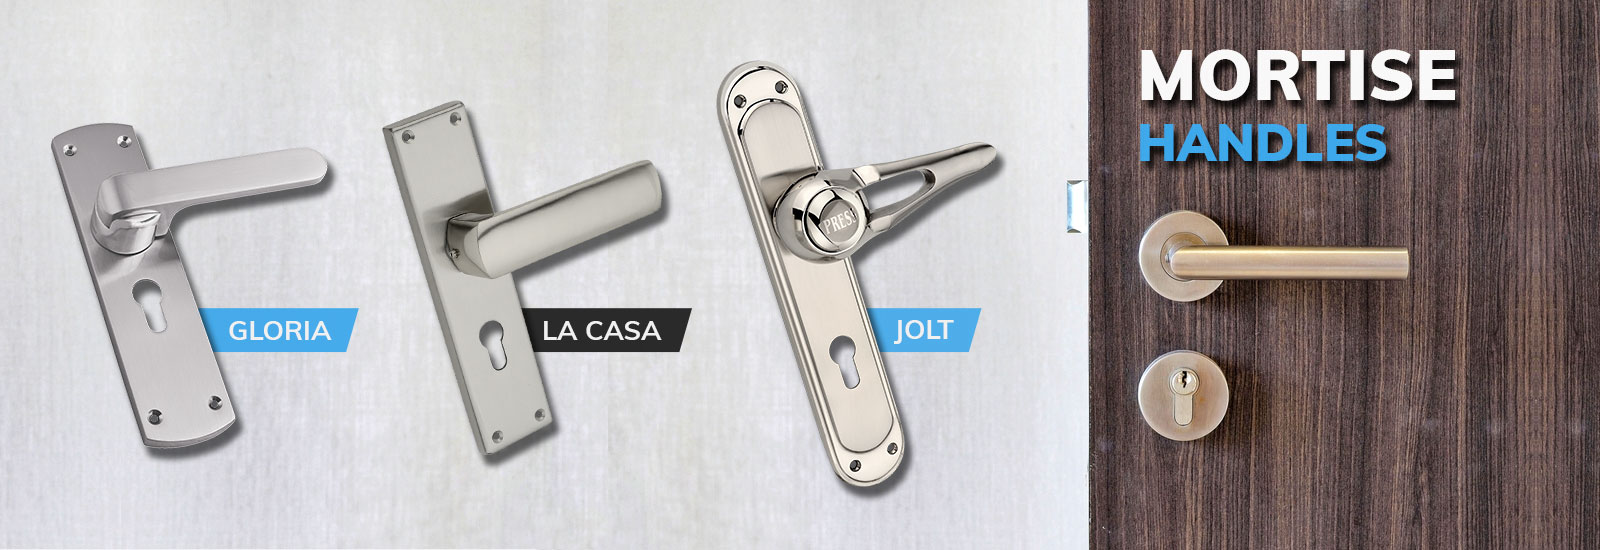 Jainson Locks Home Page Banner - Mortise Handle Sets - Gloria La Casa and Jolt